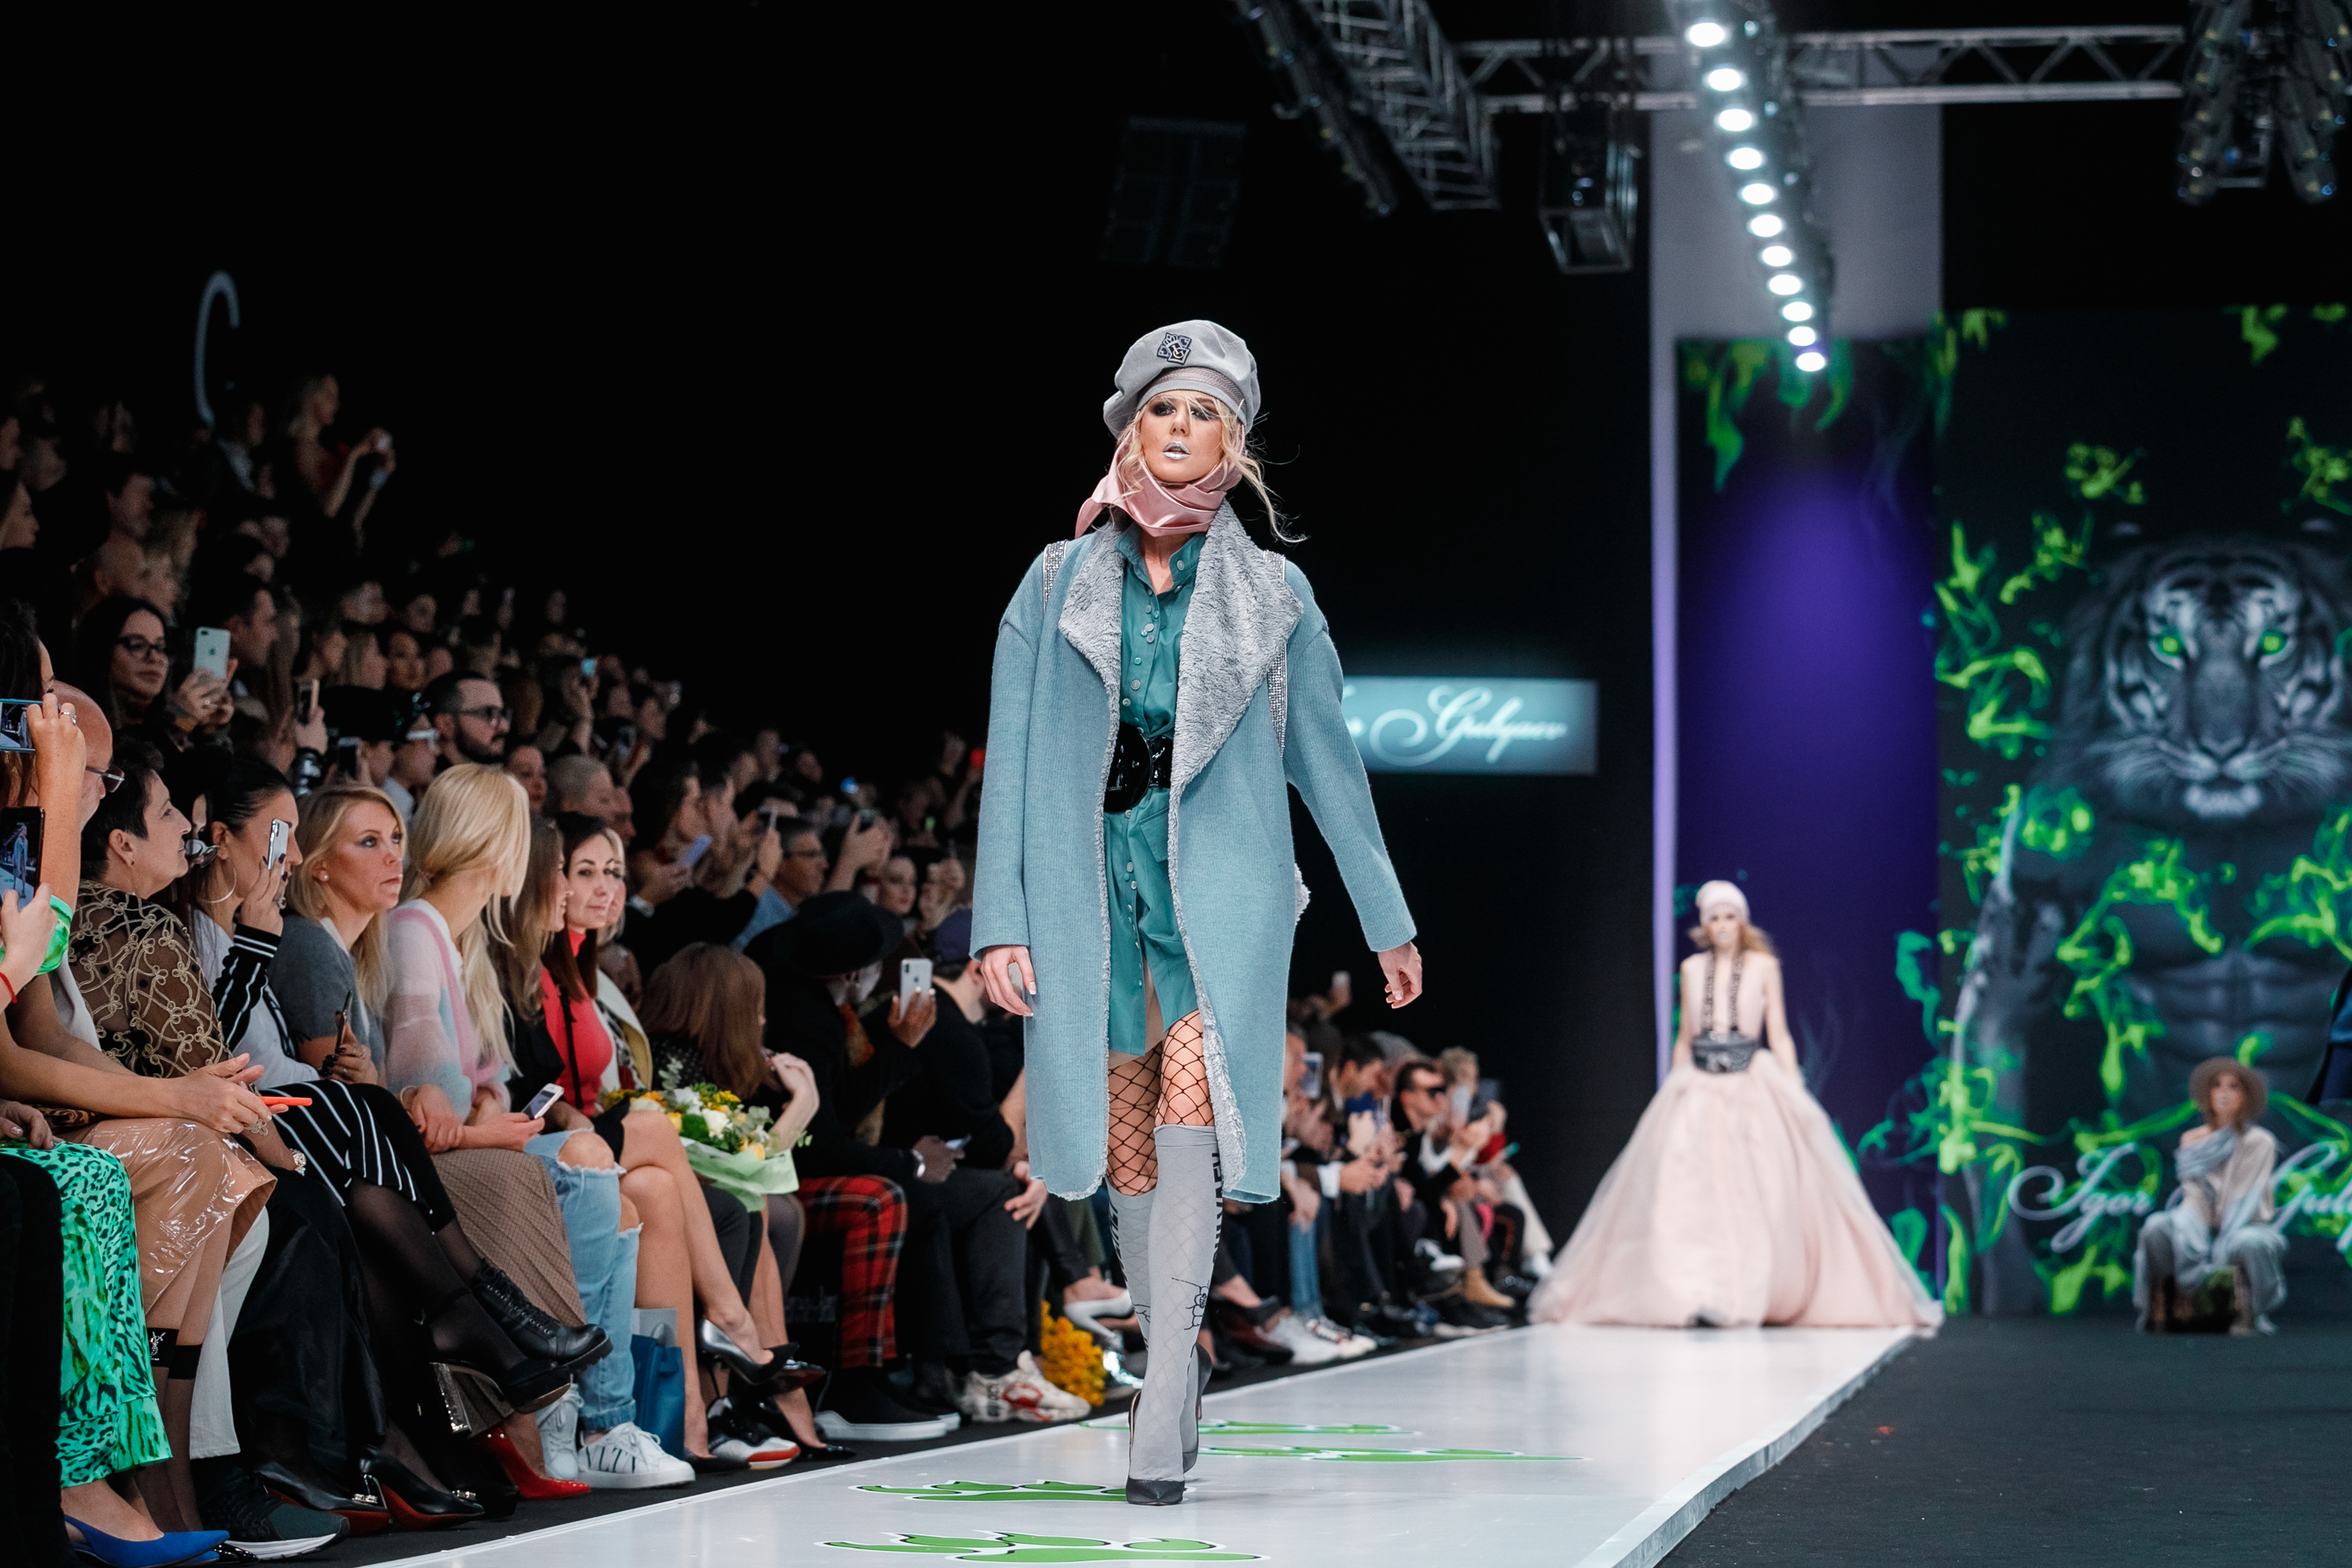 37-й сезон Mercedes-Benz Fashion Week Russia состоялся